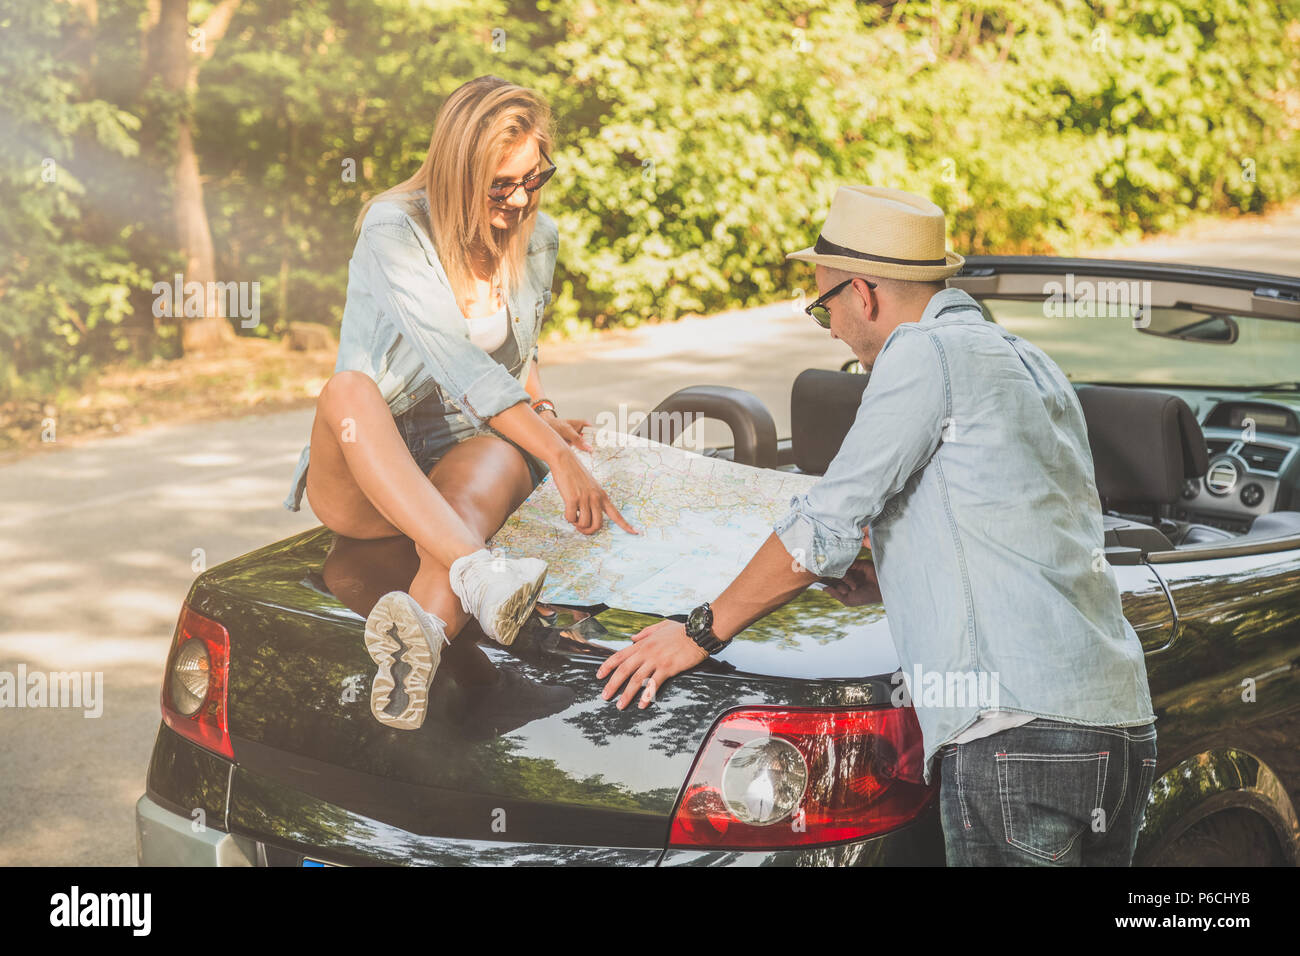 Beautiful couple looking at map on car trunk. Summer vacation road trip concept. - Stock Image